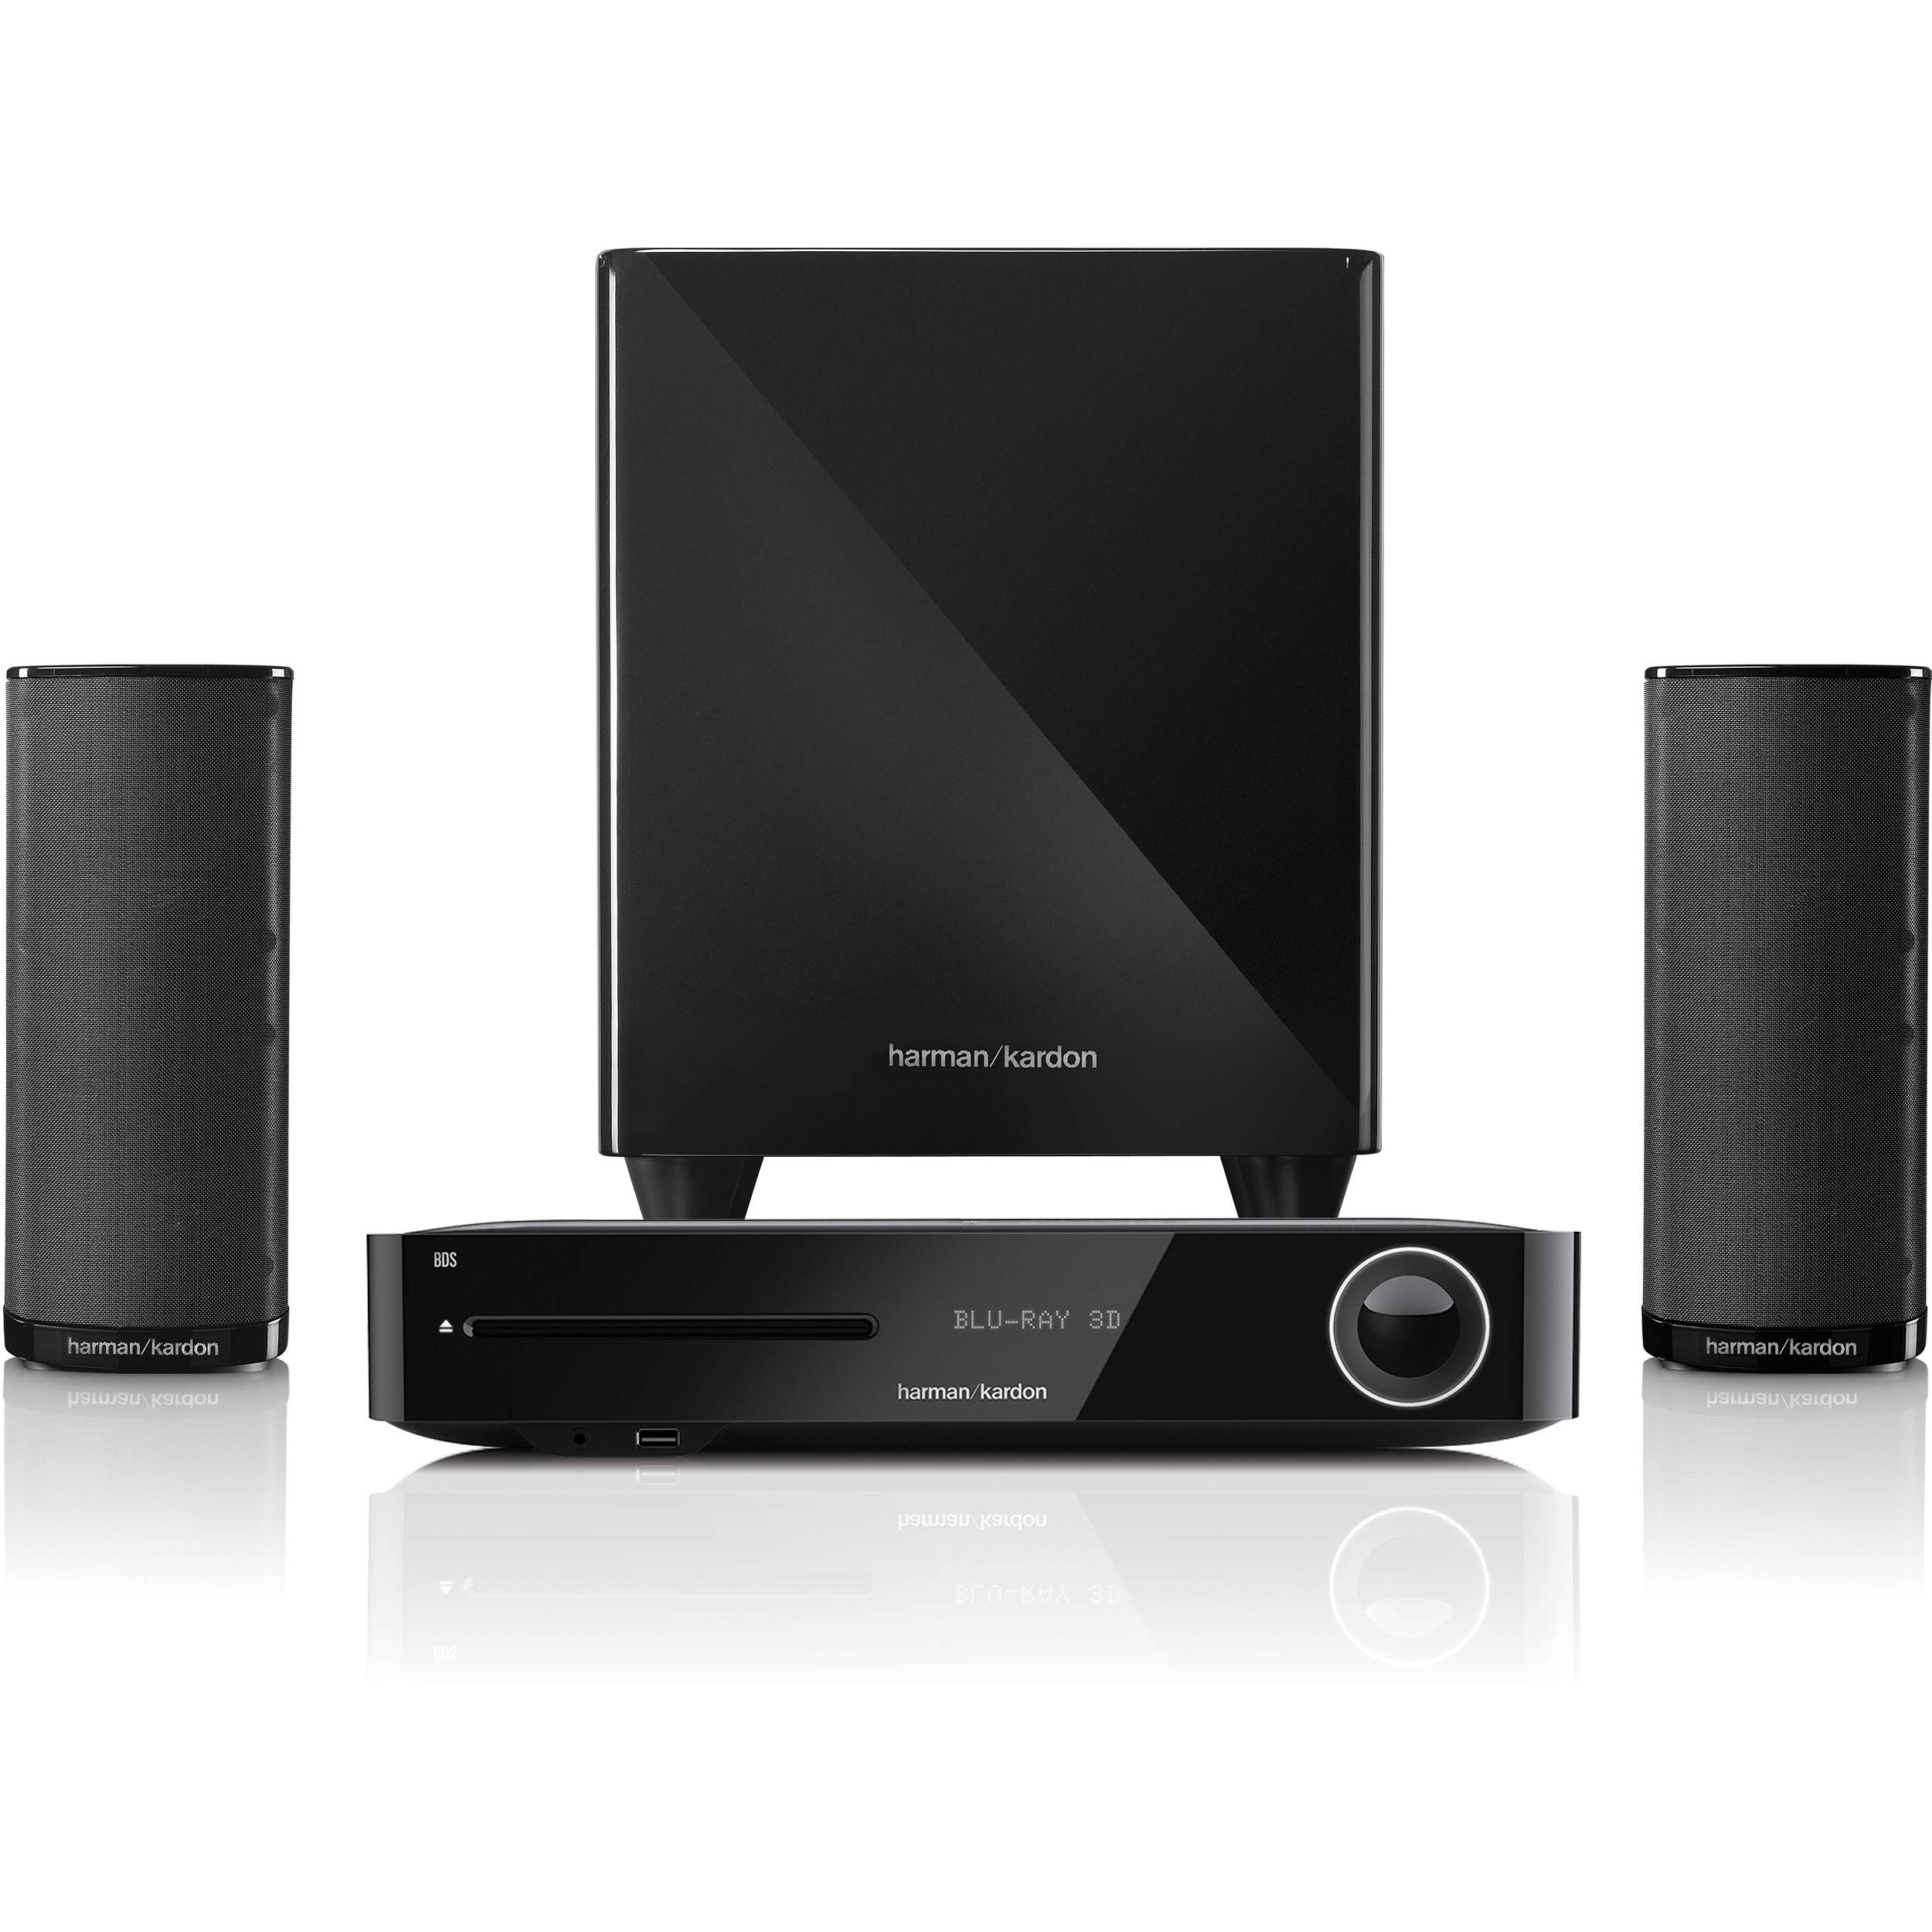 Harman Kardon Bds 280.Harman Kardon Bds 380 High Performance 2 1 Channel Networked 3d Blu Ray Disc System